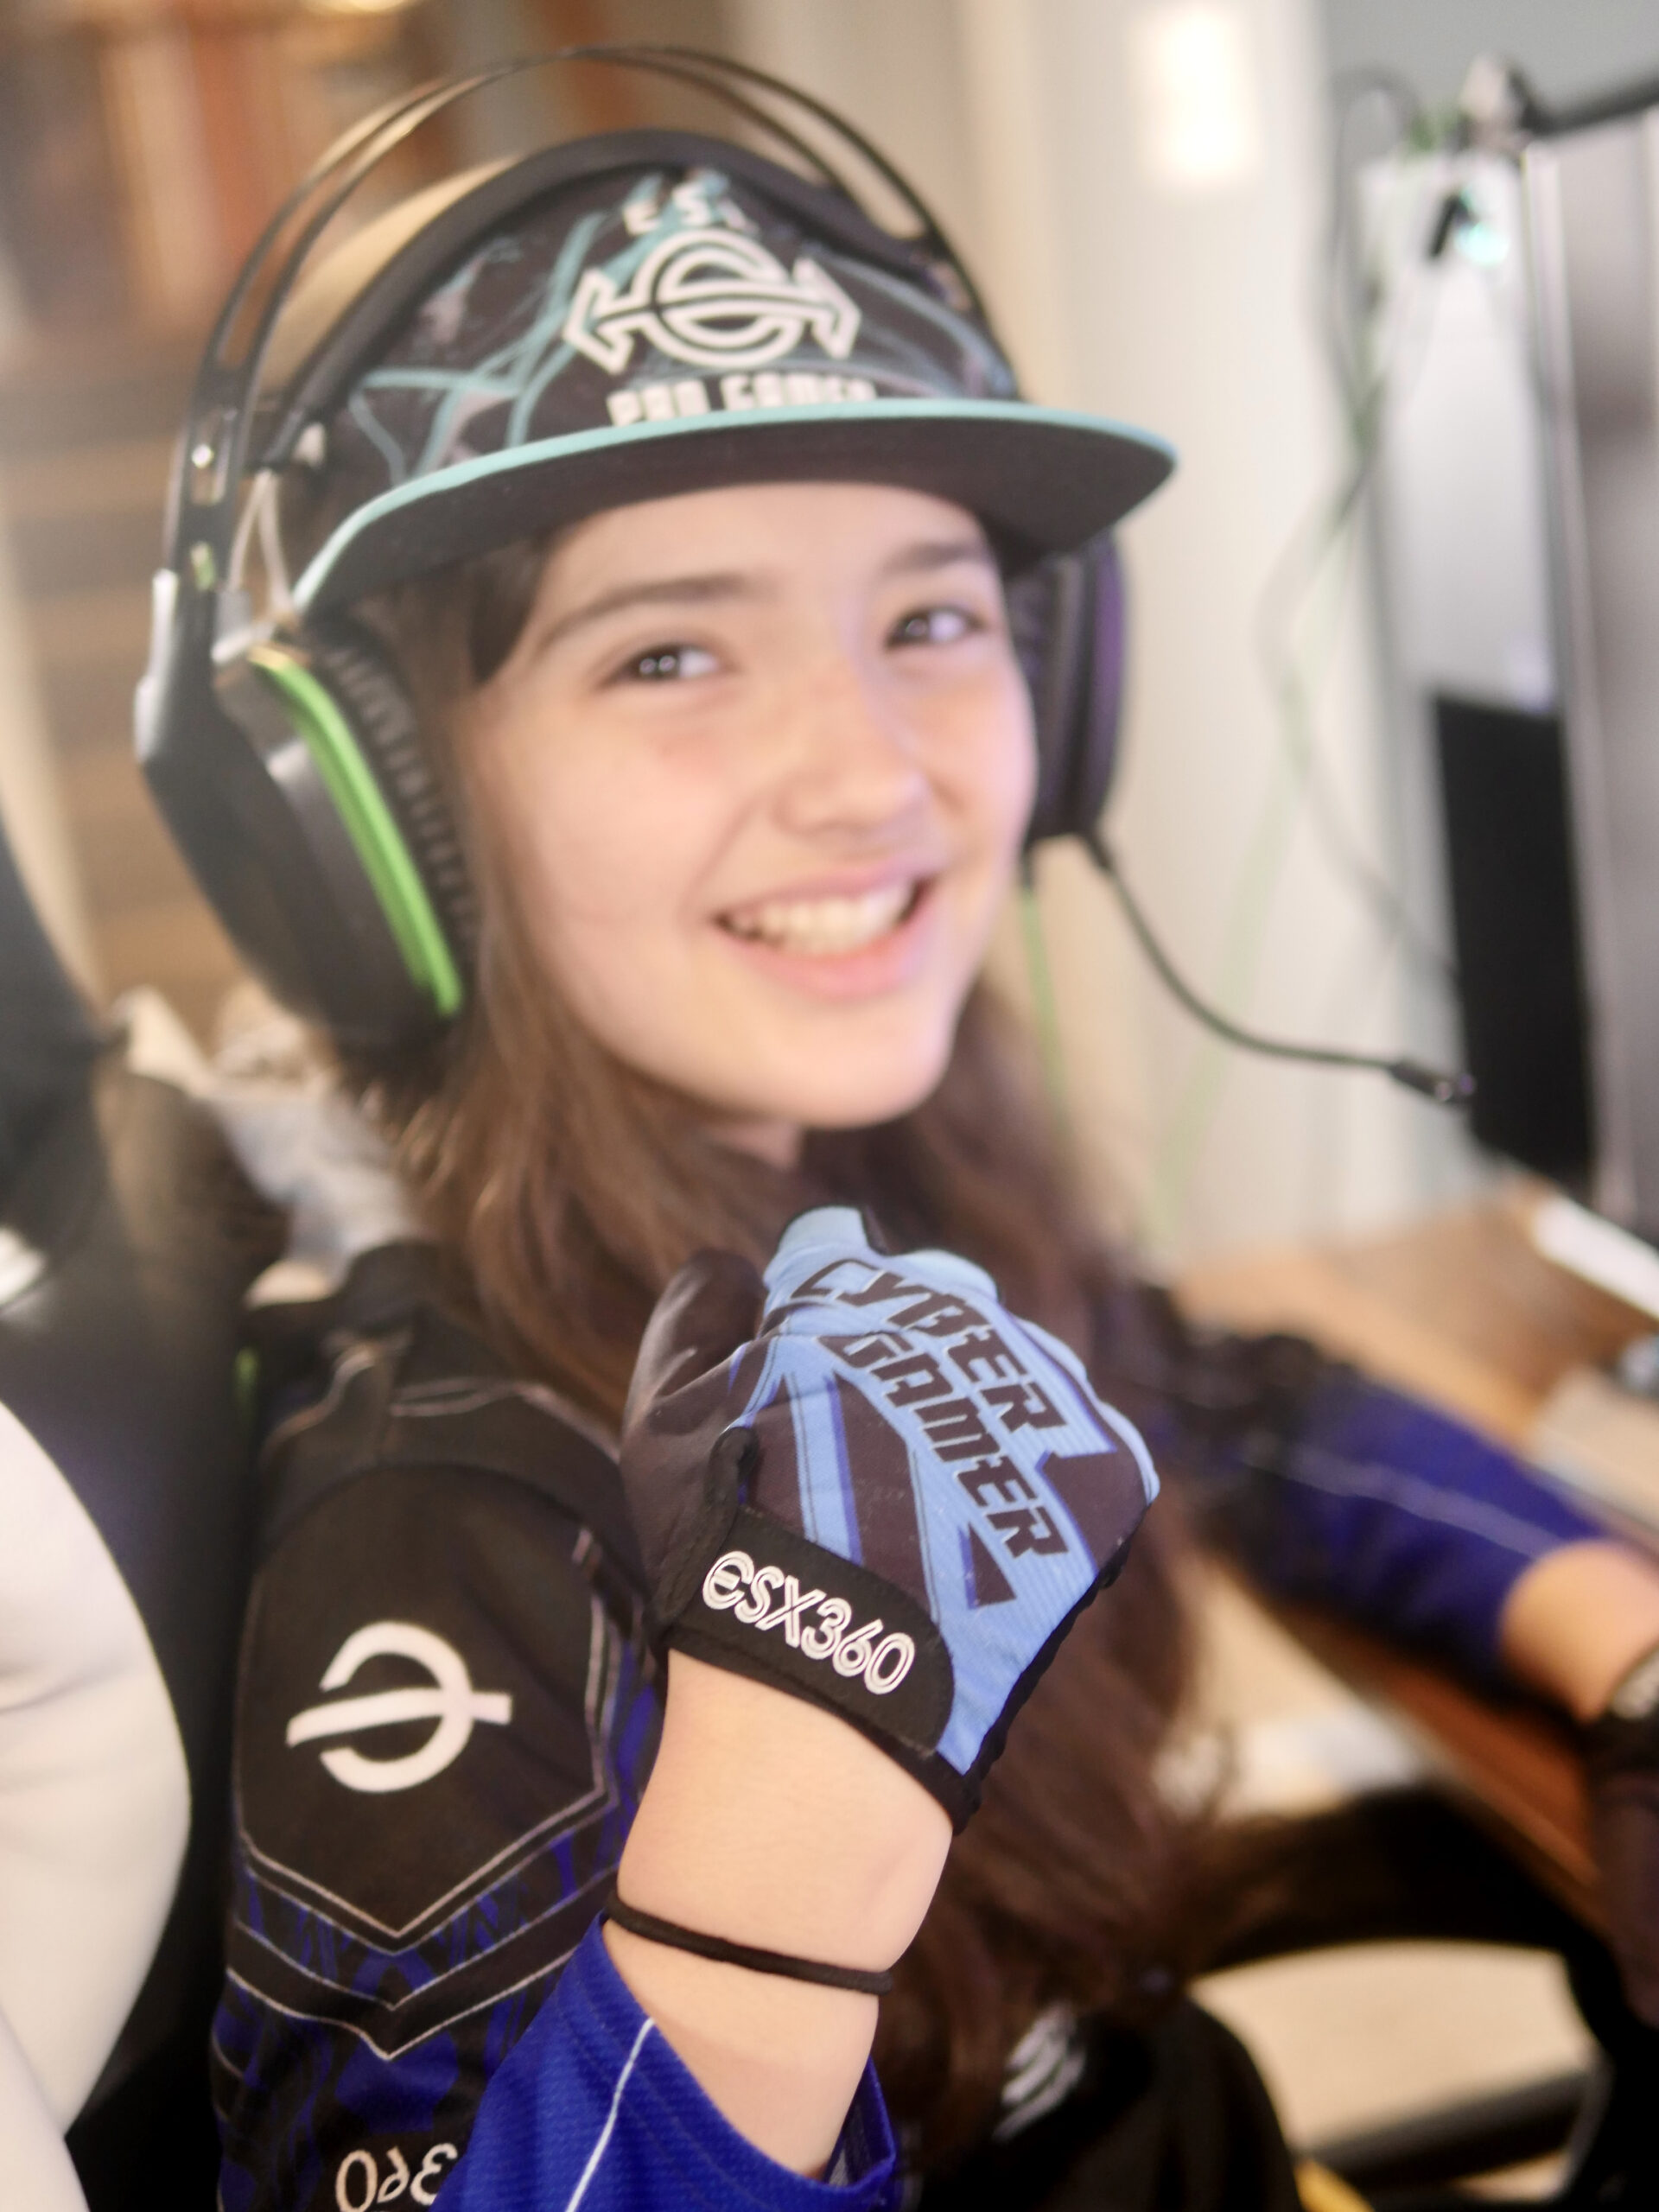 Encouraging Your Child's Interests with ESX360 Gaming Gear